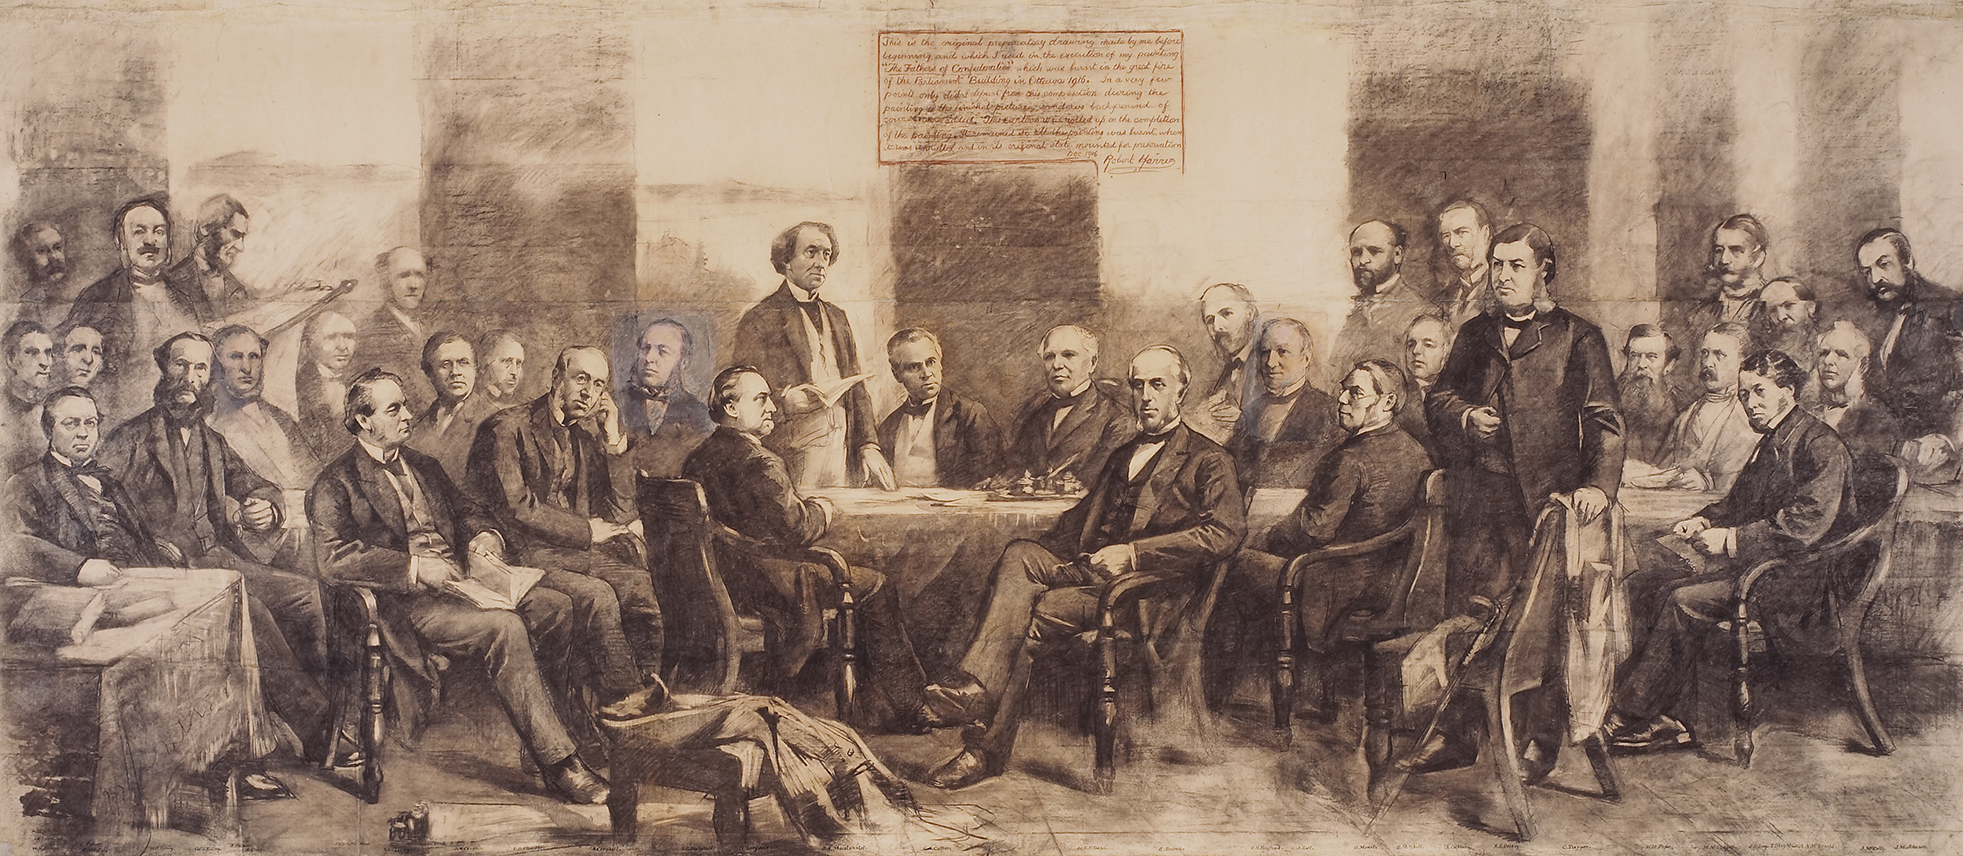 This drawing shows thirty-four men gathered in a large room, each depicted  in